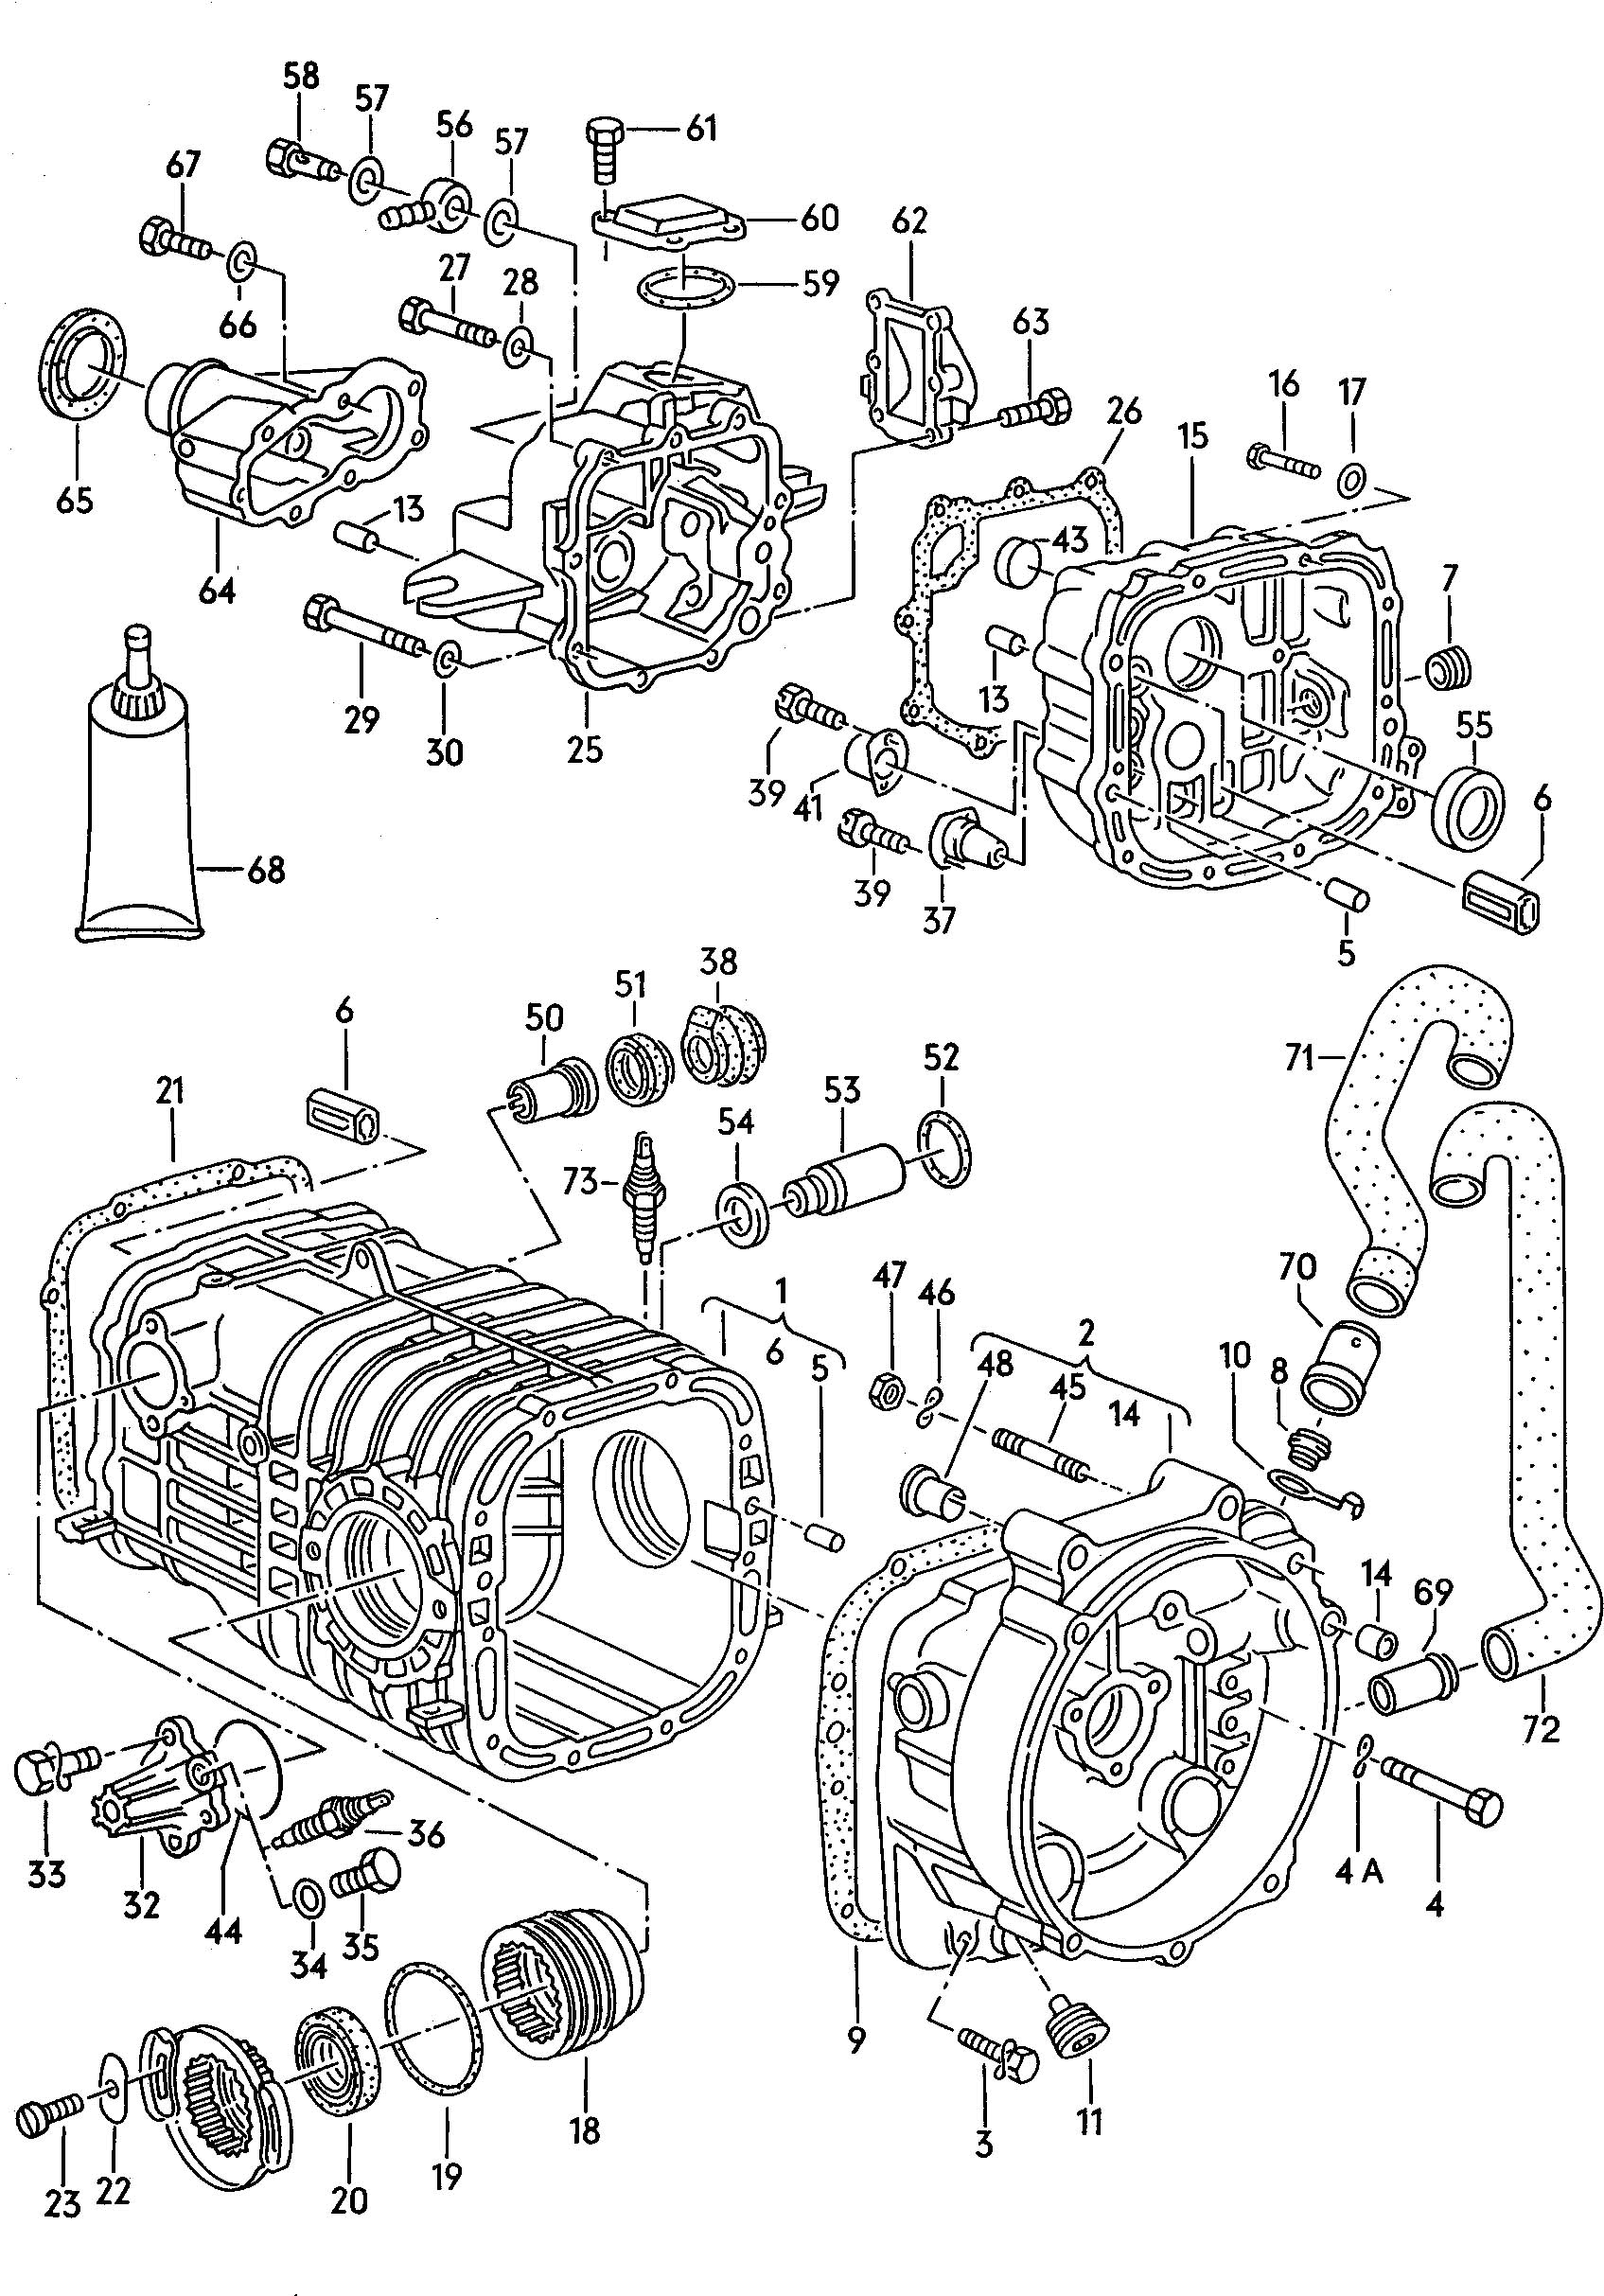 Vw Routan Transmission Light Engine Diagram And Wiring 2010 Volkswagen Fuse Box In Addition Showassembly Moreover Headlight Bulb Together With